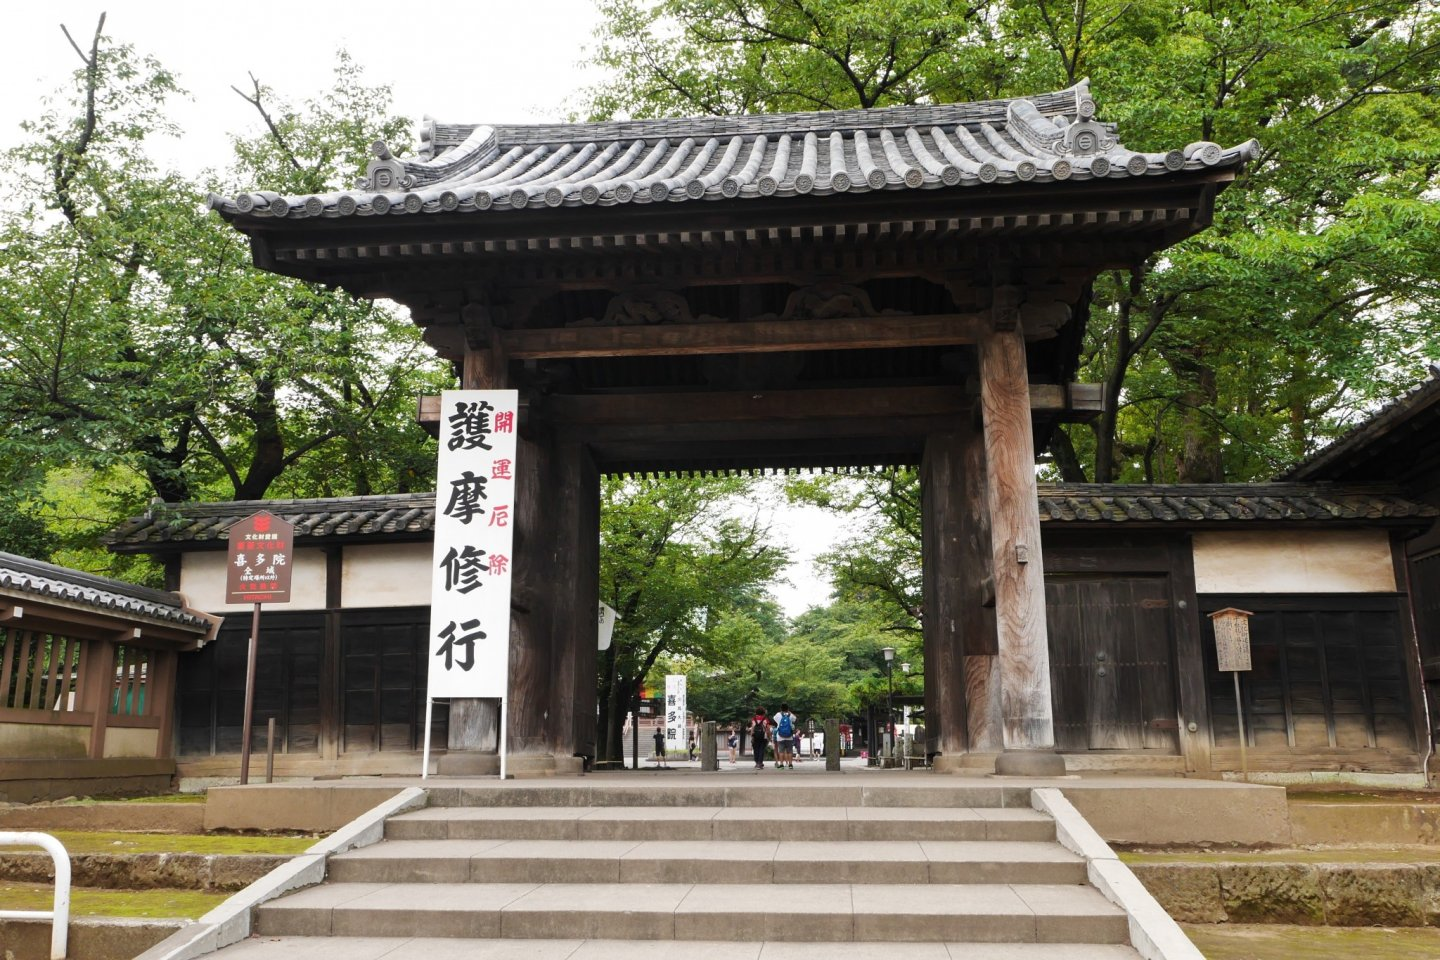 The main entrance to Kitain Temple